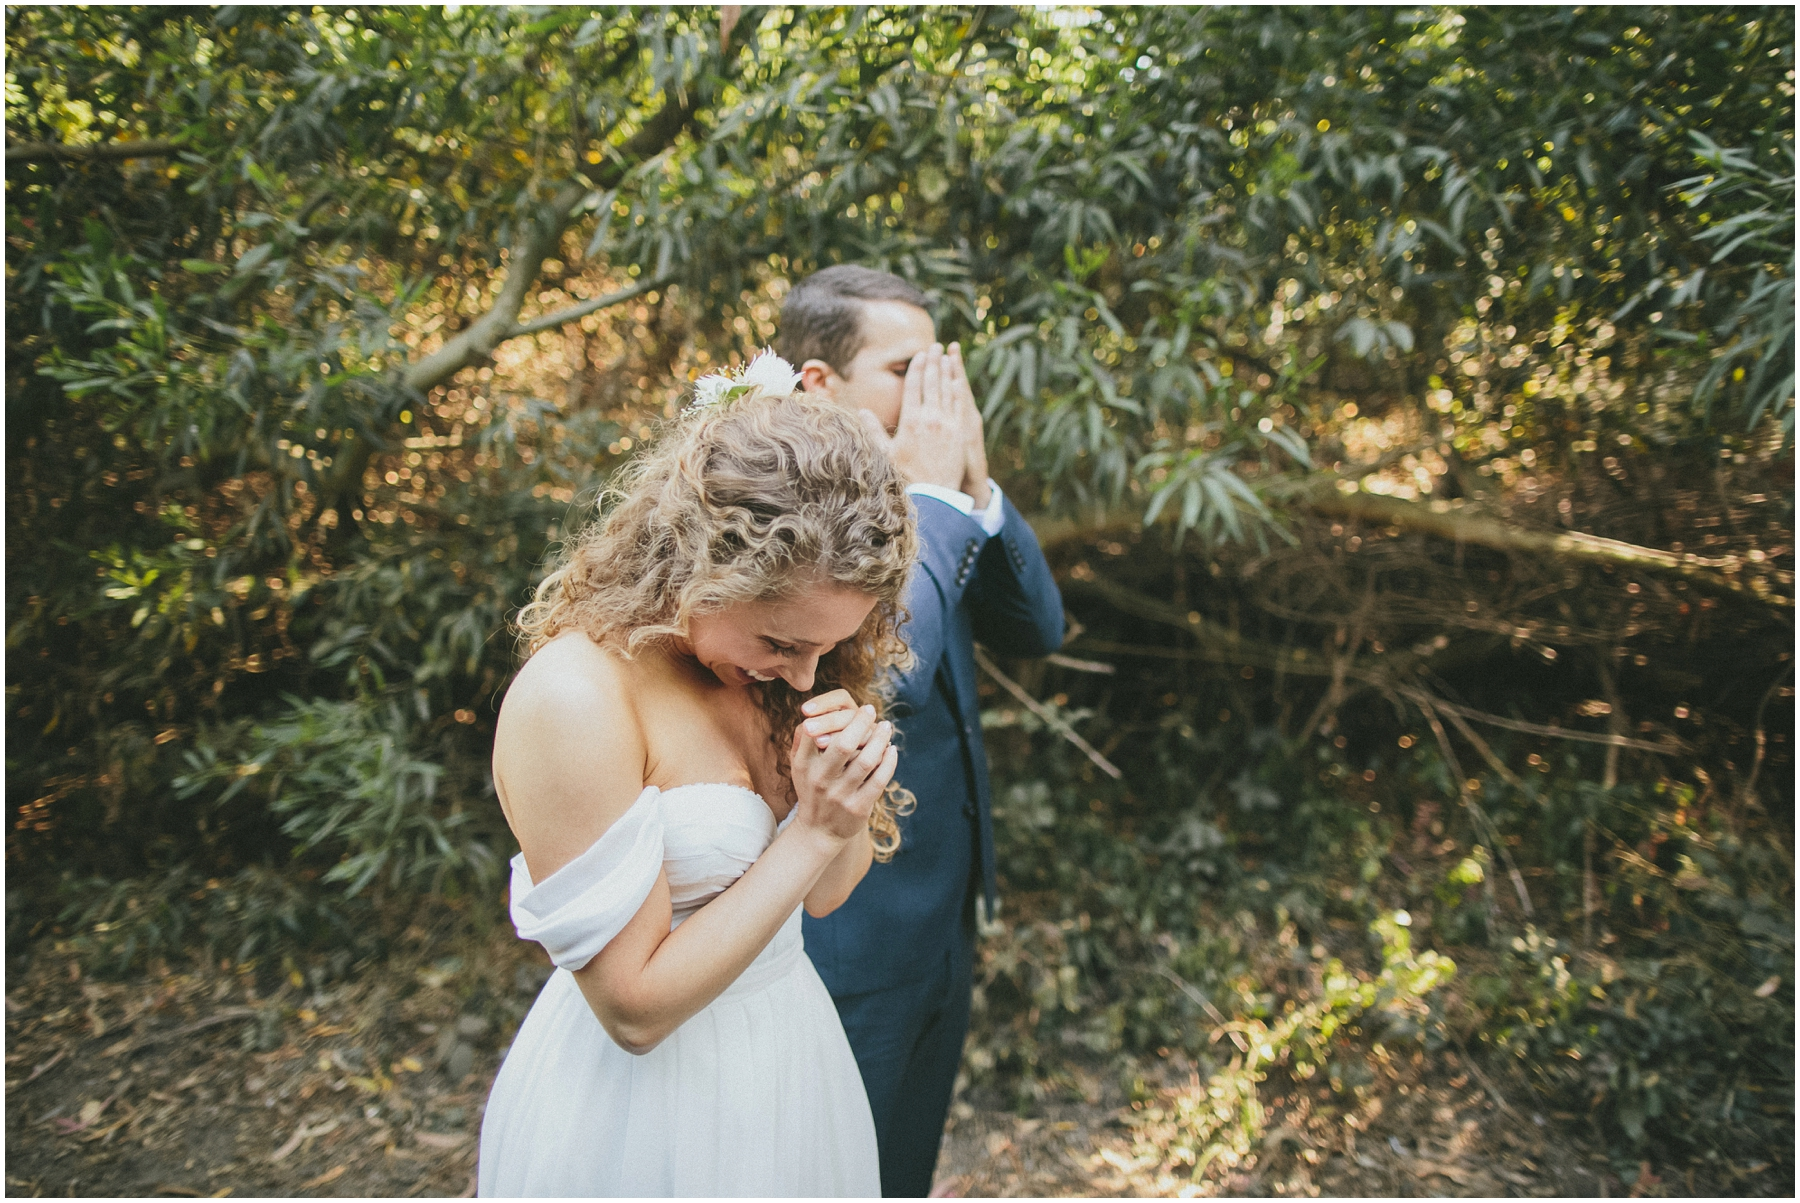 Emily+Paul-WEDDING_KellyBoitanoPhotography_0027